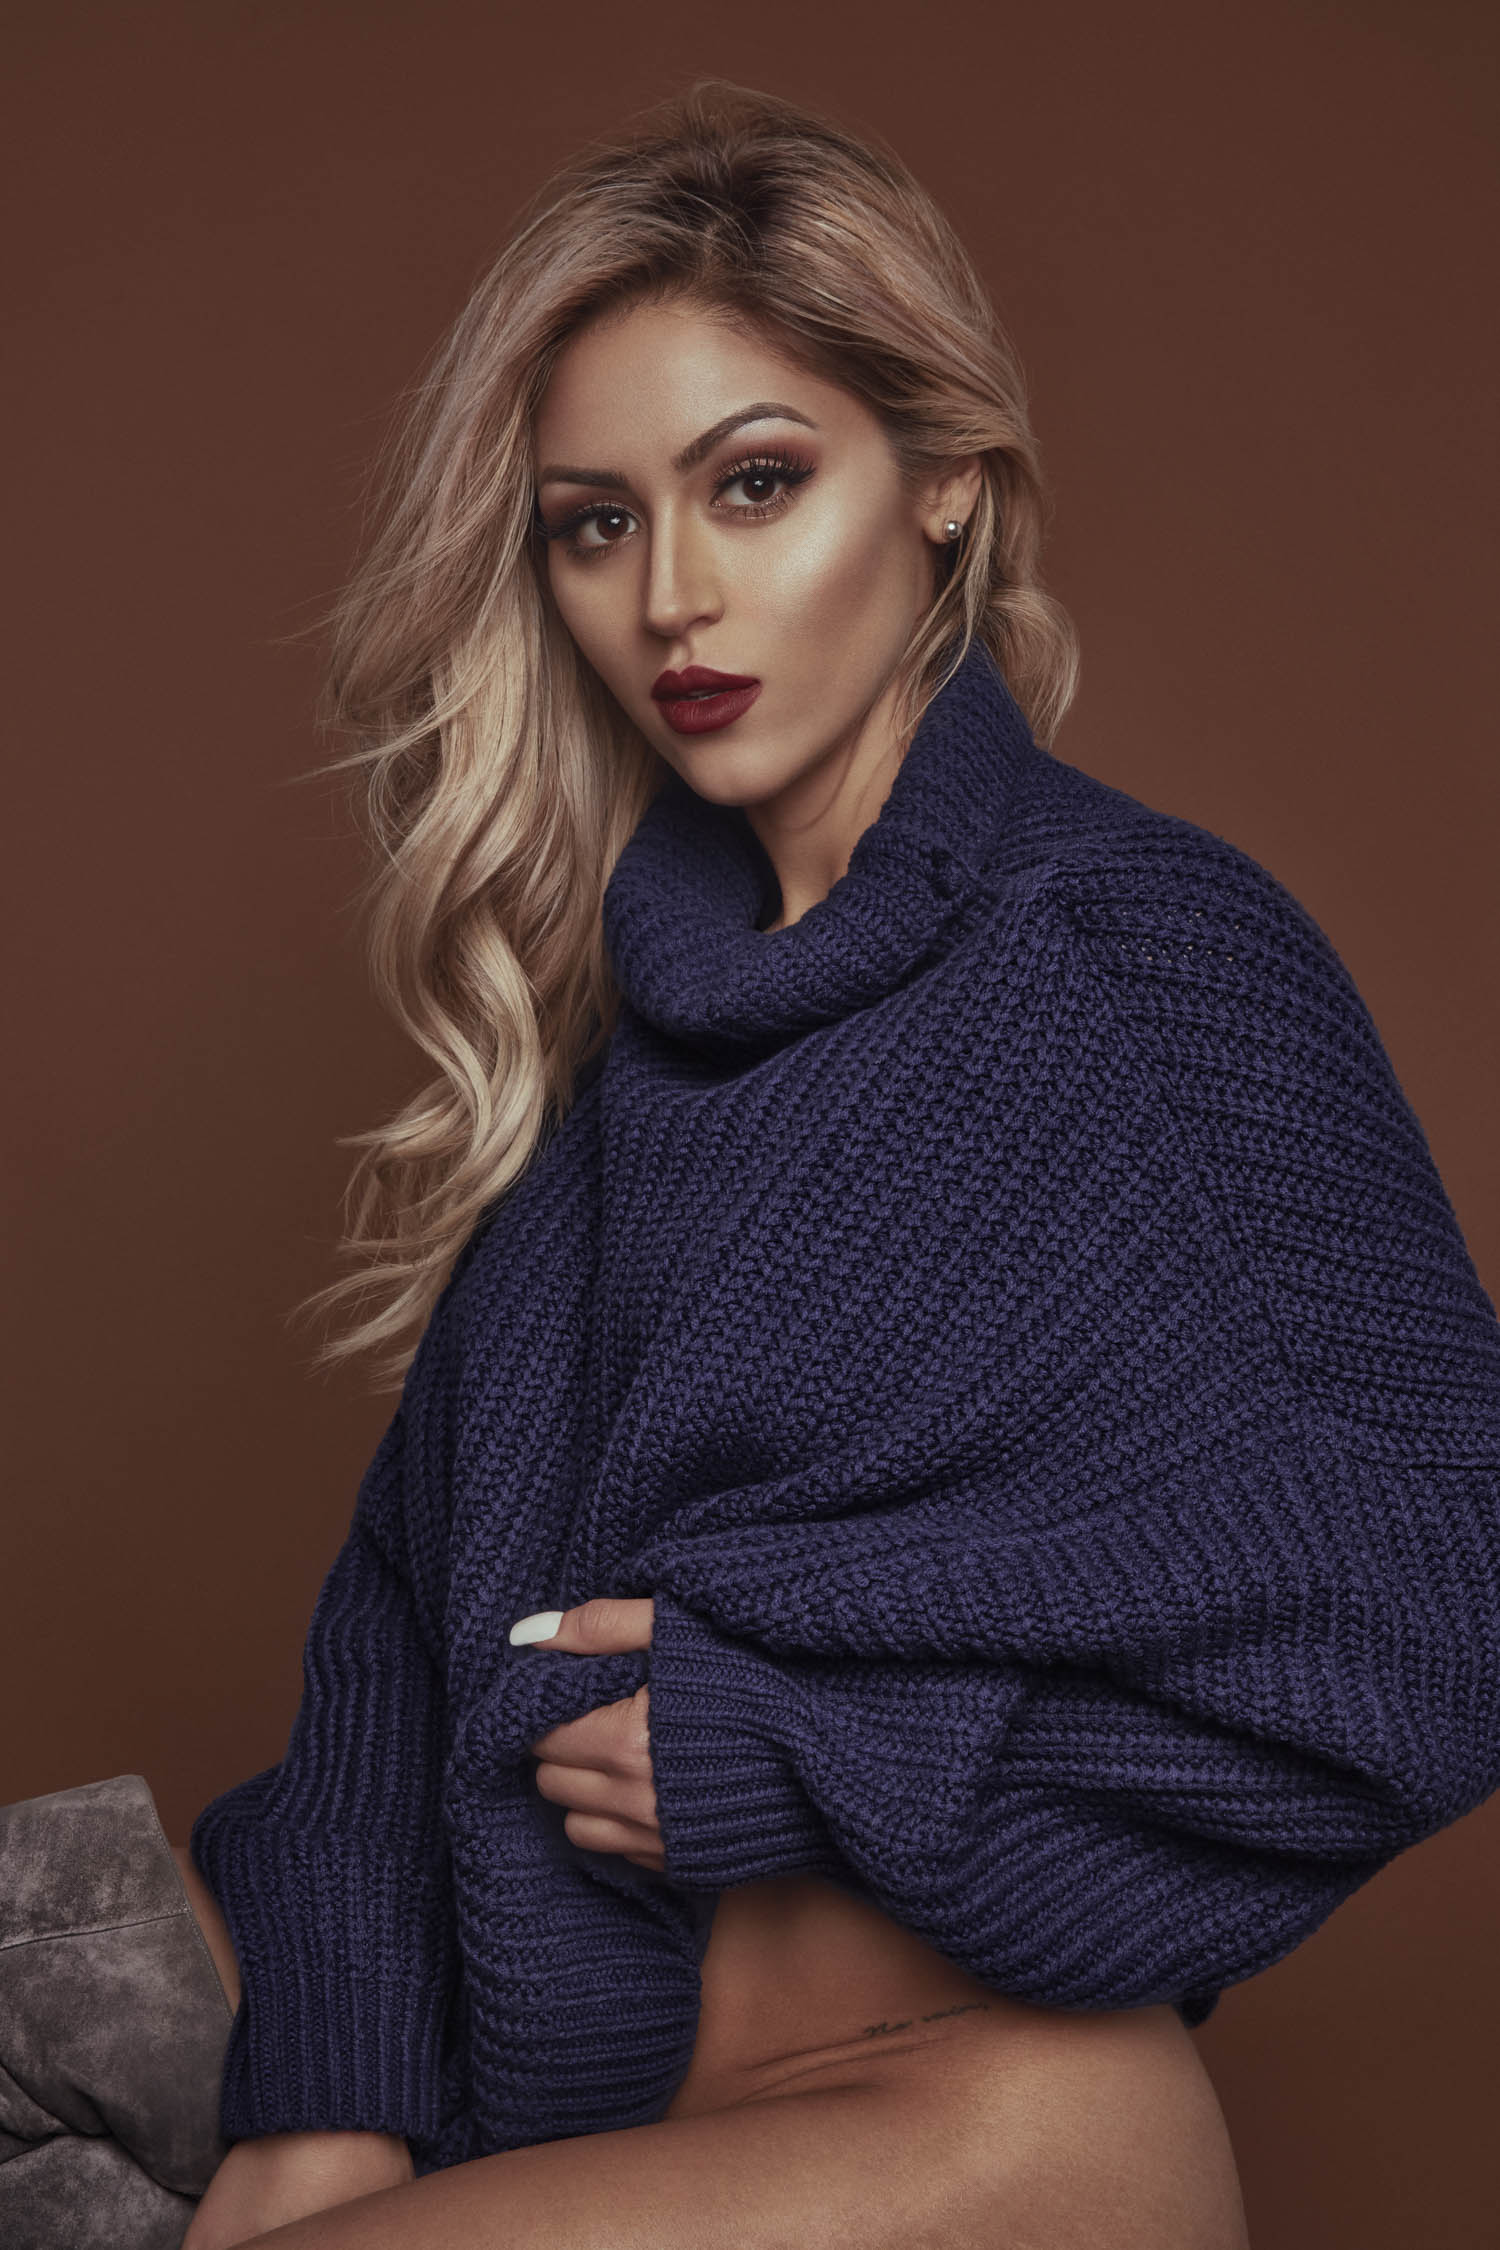 Blonde woman with red lipstick in a blue cowl neck oversized sweater